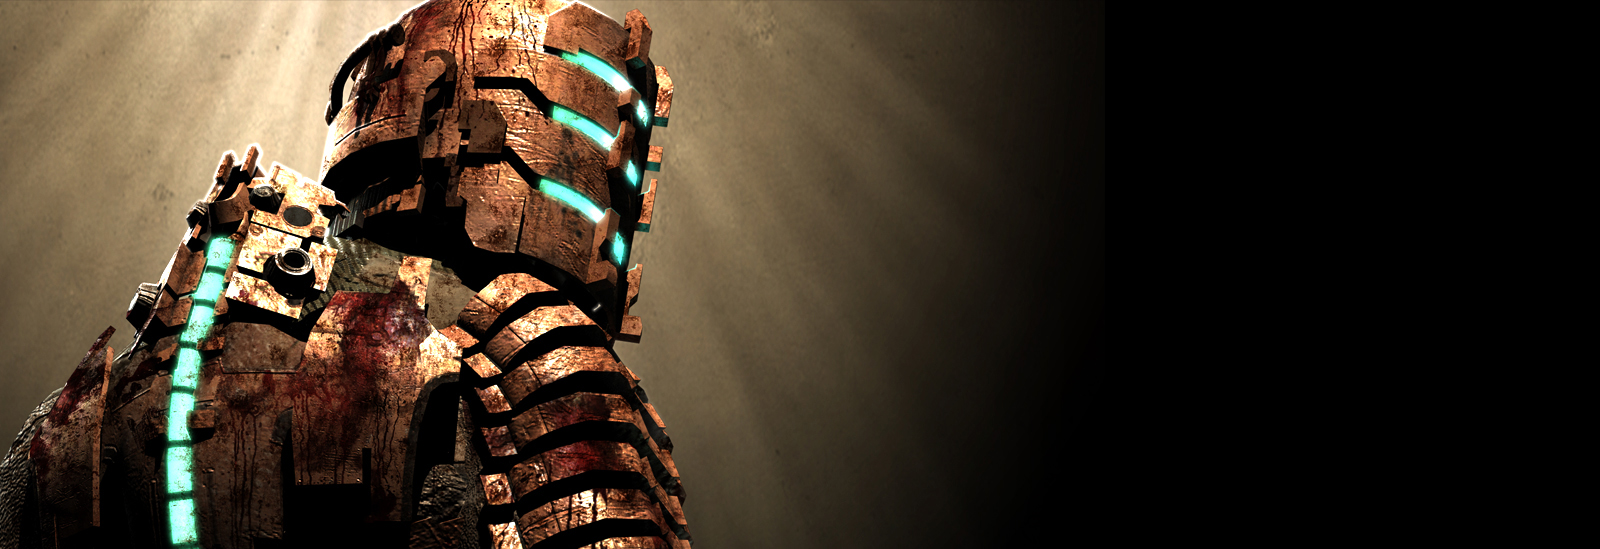 2862860-dead_space_wallpaper_